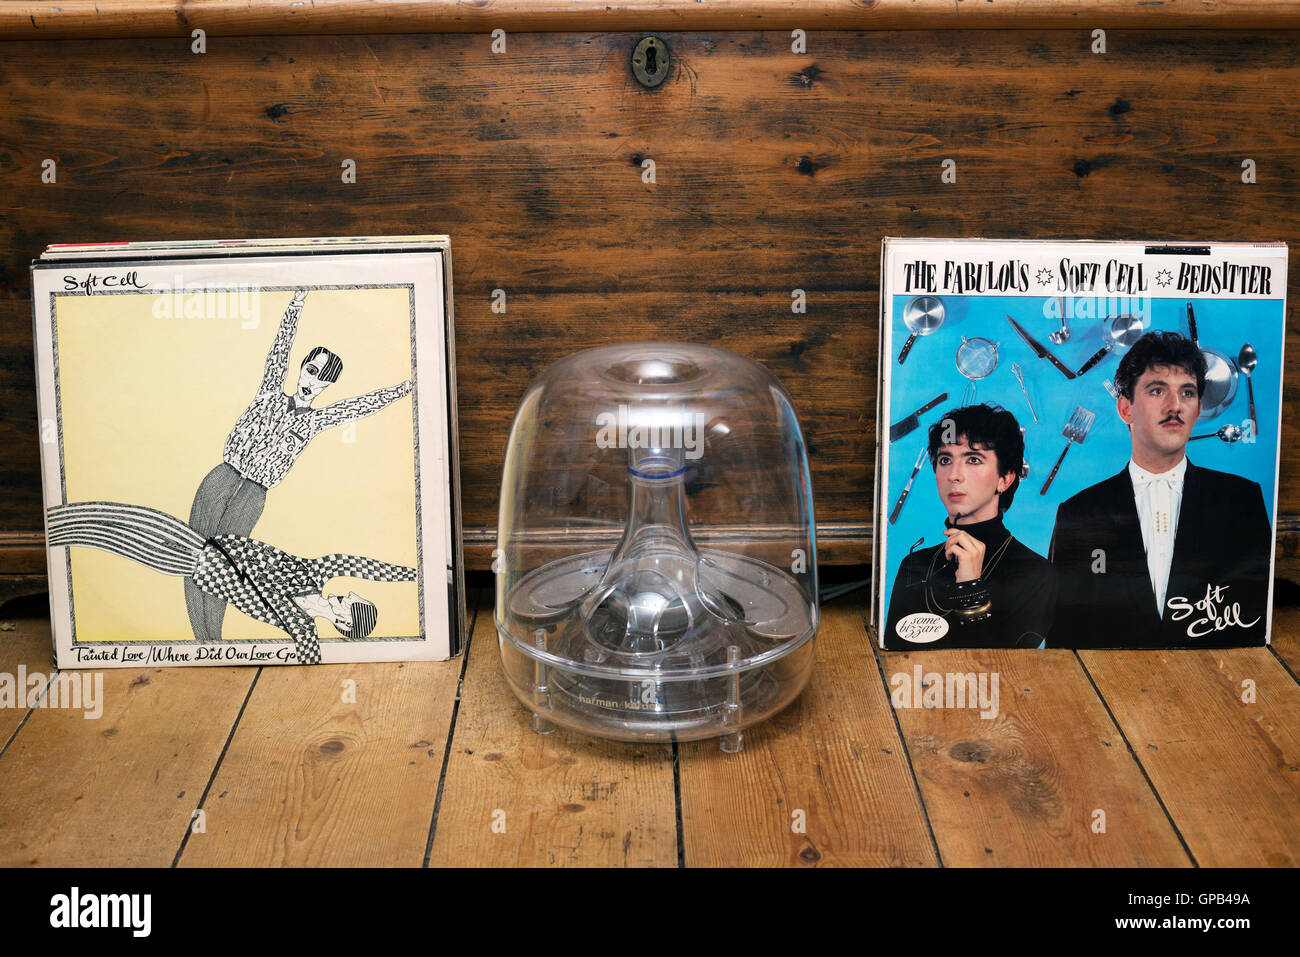 Soft Cell Tainted Love and Bedsitter 12' singles - Stock Image